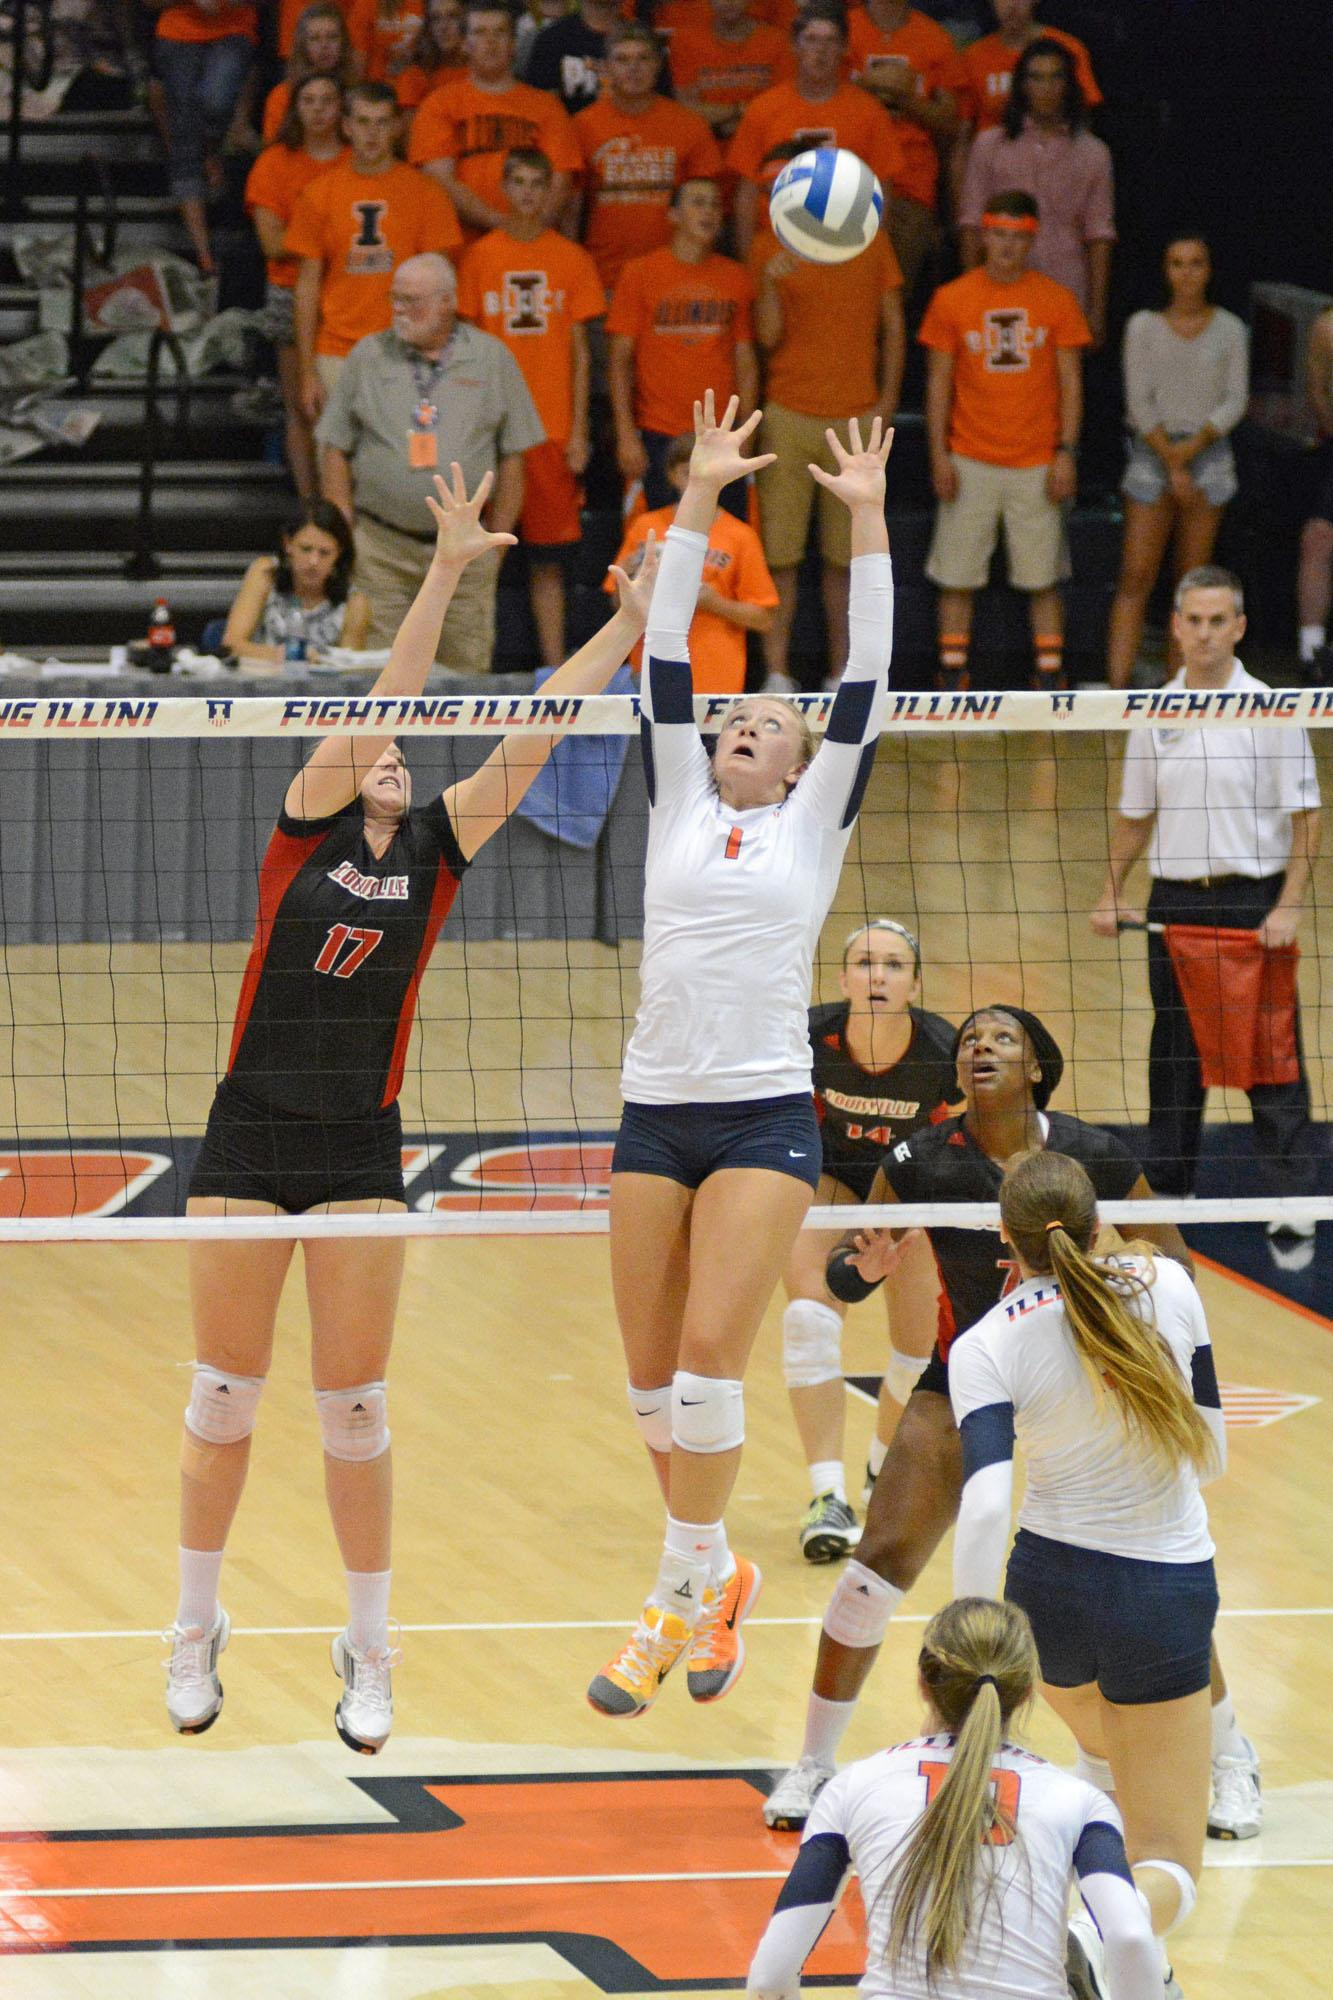 Illinois' Jordyn Poulter (1) sets the ball during the game vs Louisville  at Huff Hall on Friday, Aug. 28, 2015.  Illinois won 3-0.